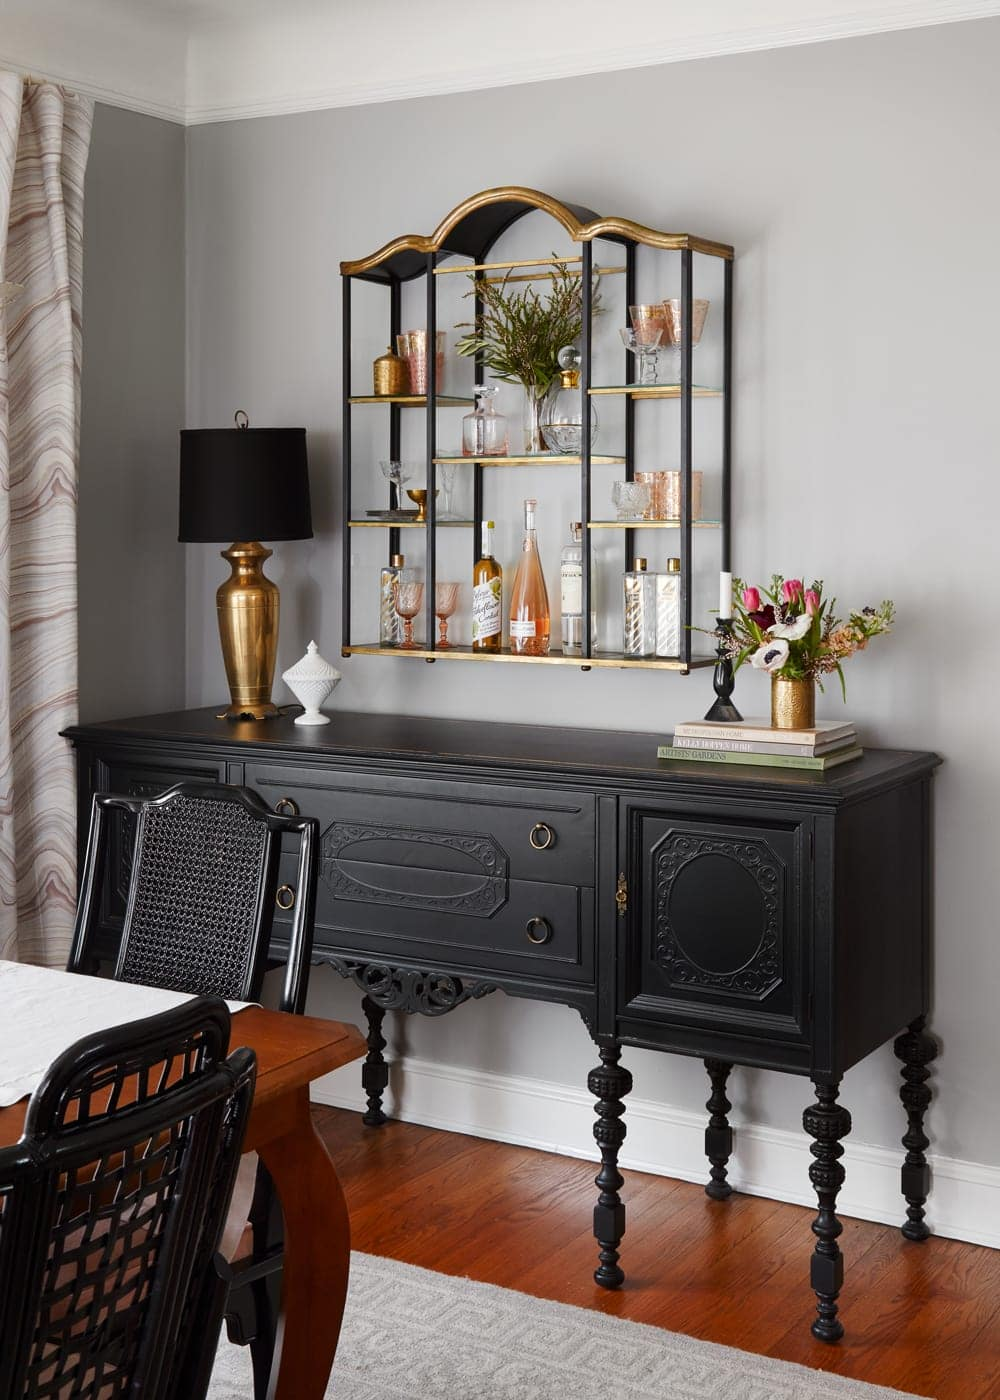 The Best Dark Paint Colors To Use For Your Home Interior